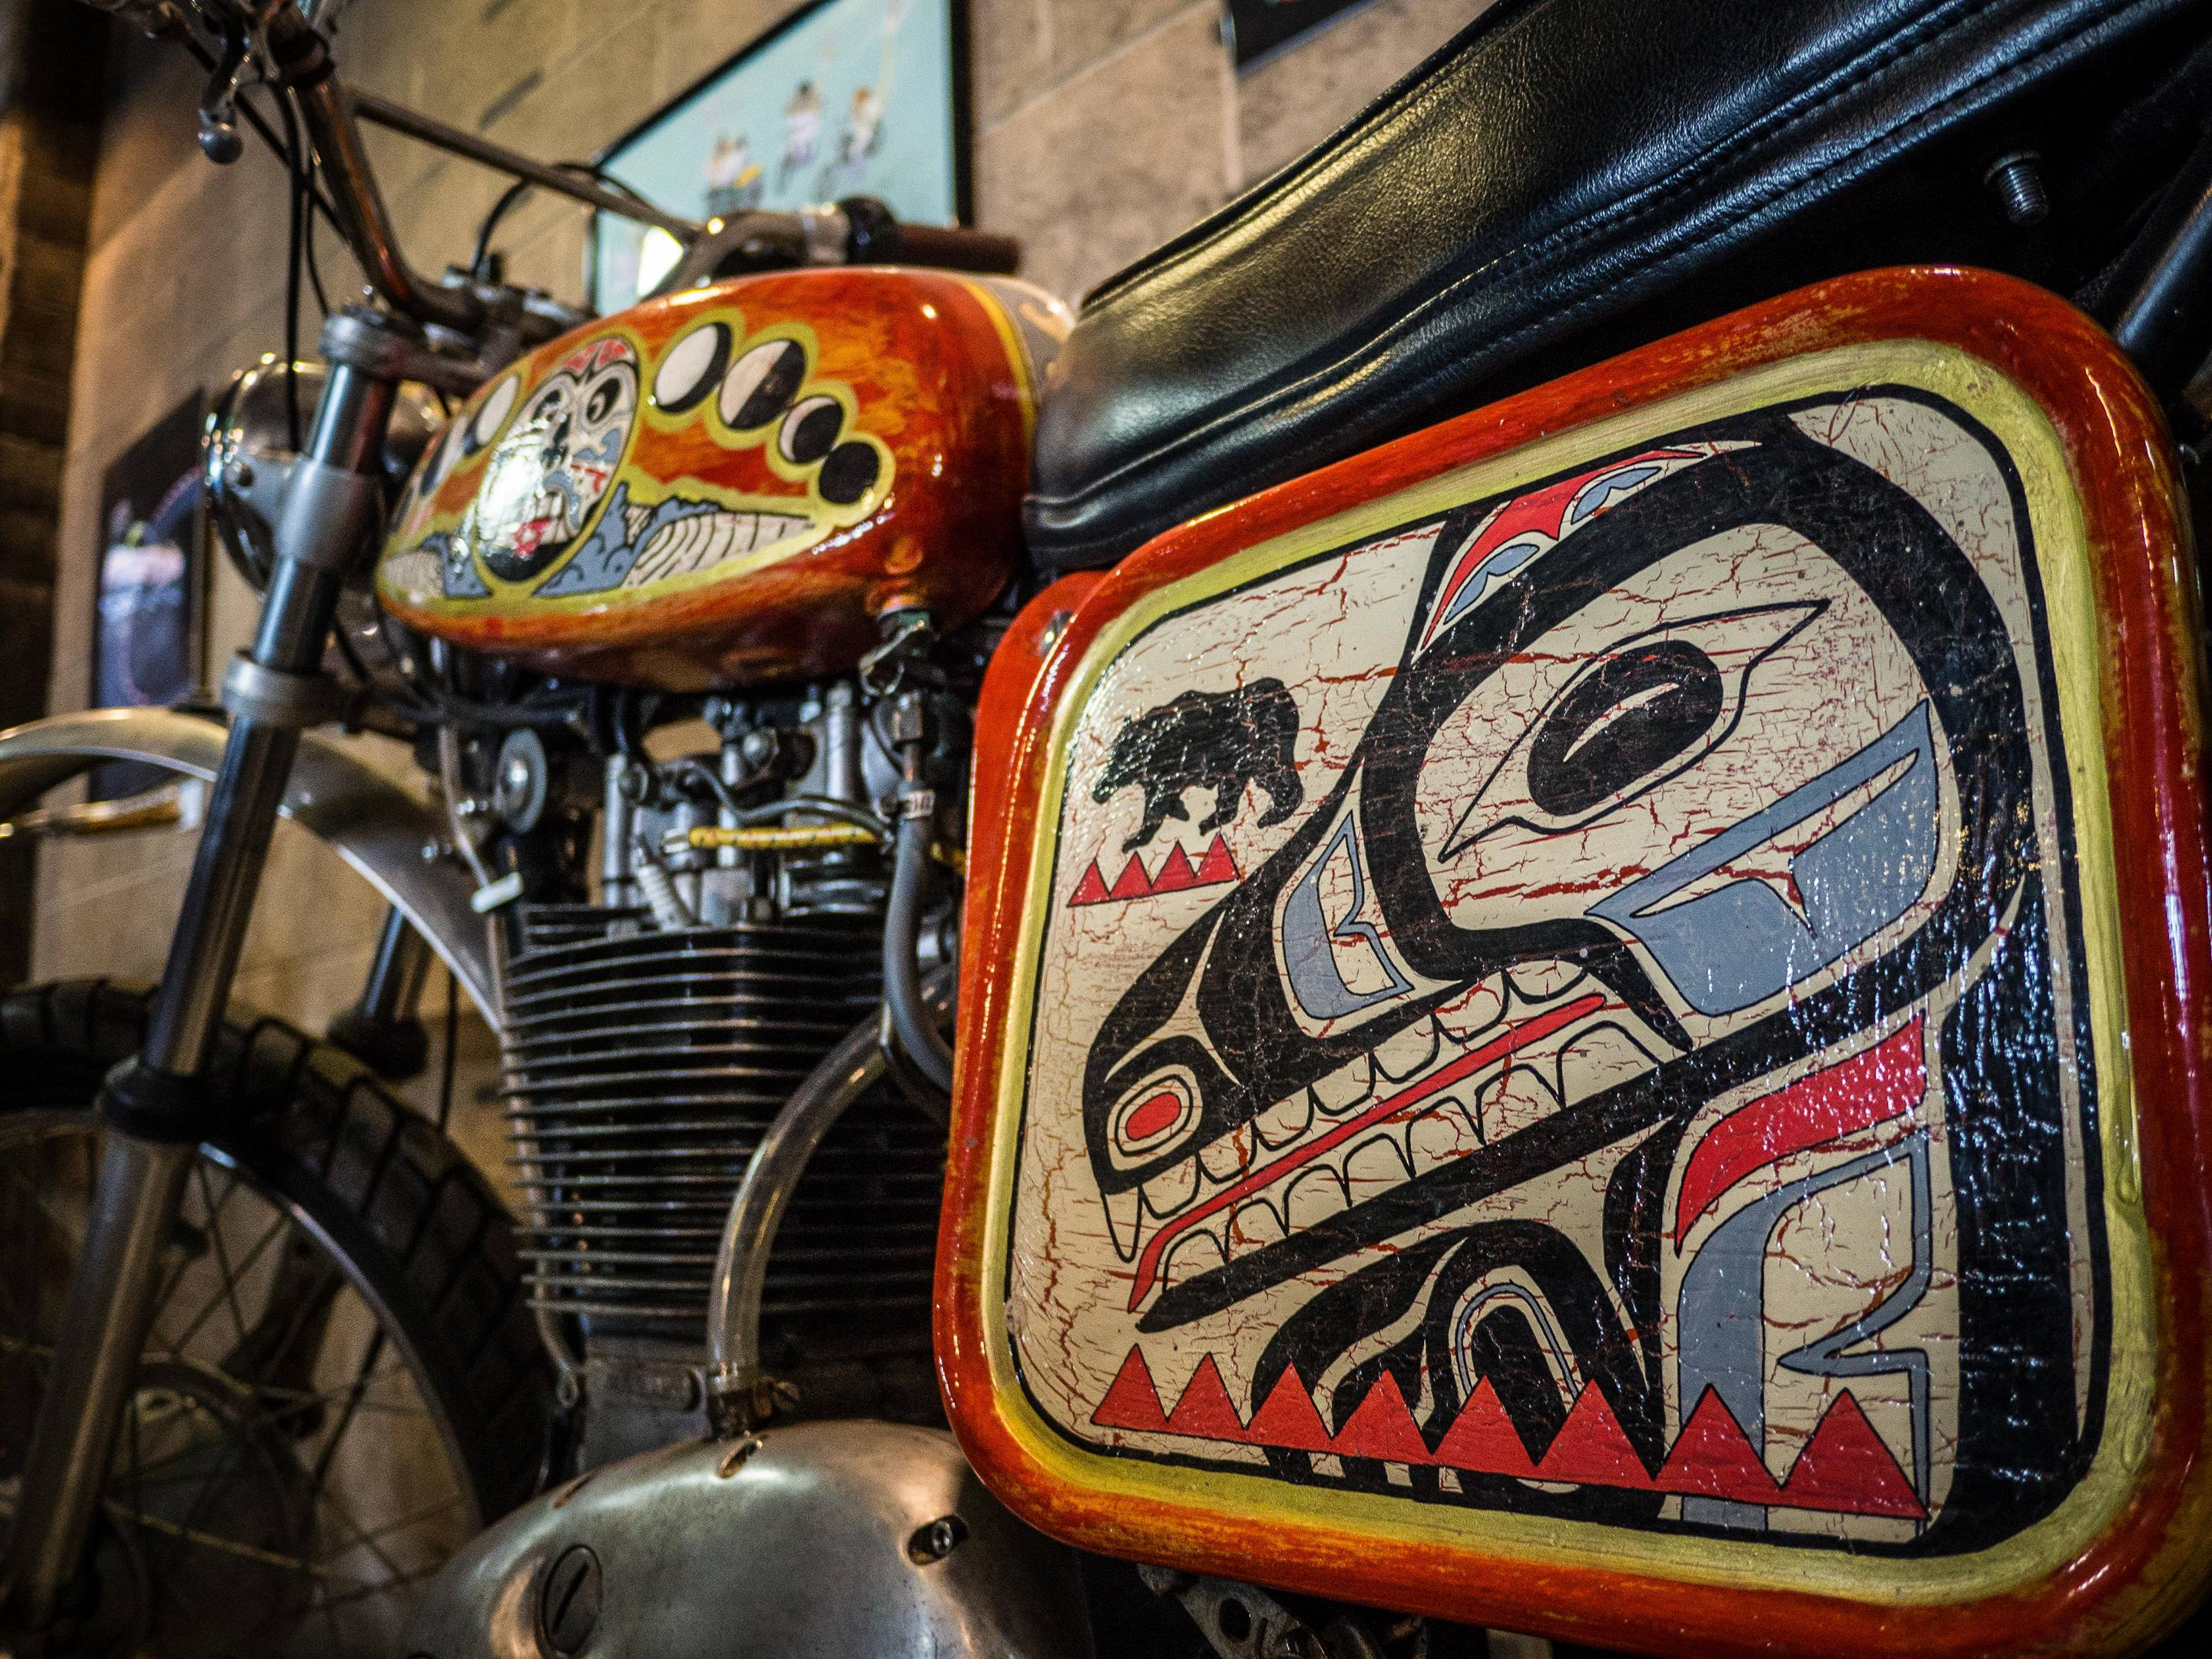 This 1972 BSA B50 MX had wonderful patina on custom paintwork that paid tribute to native peoples of the Pacific Northwest.